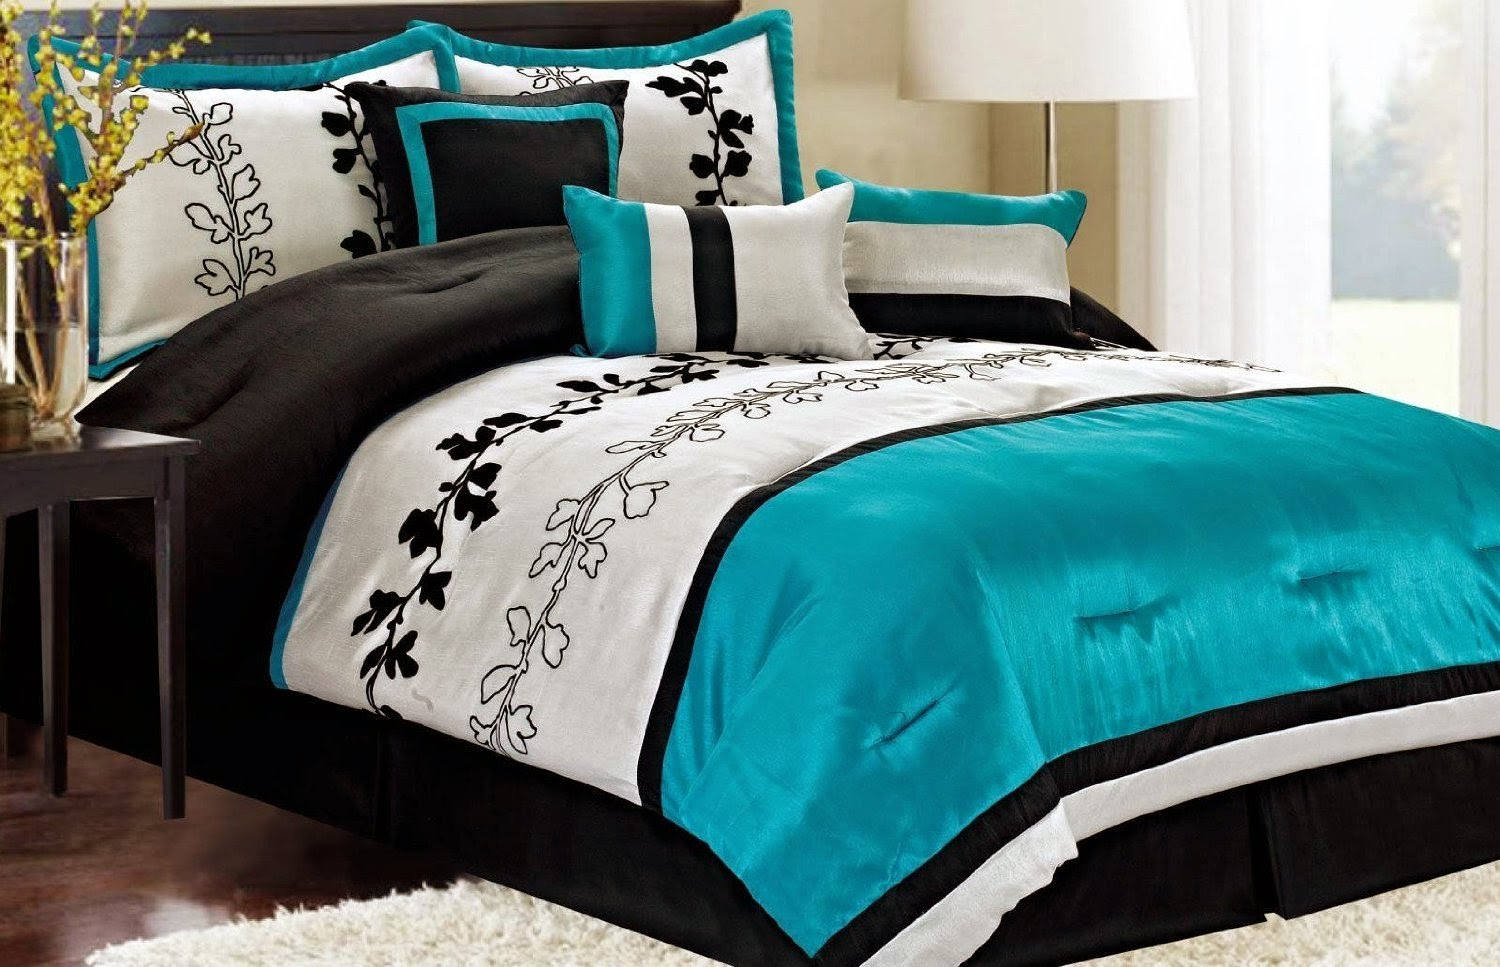 Beautiful enticing floral pattern turquoise bed sheet in casual